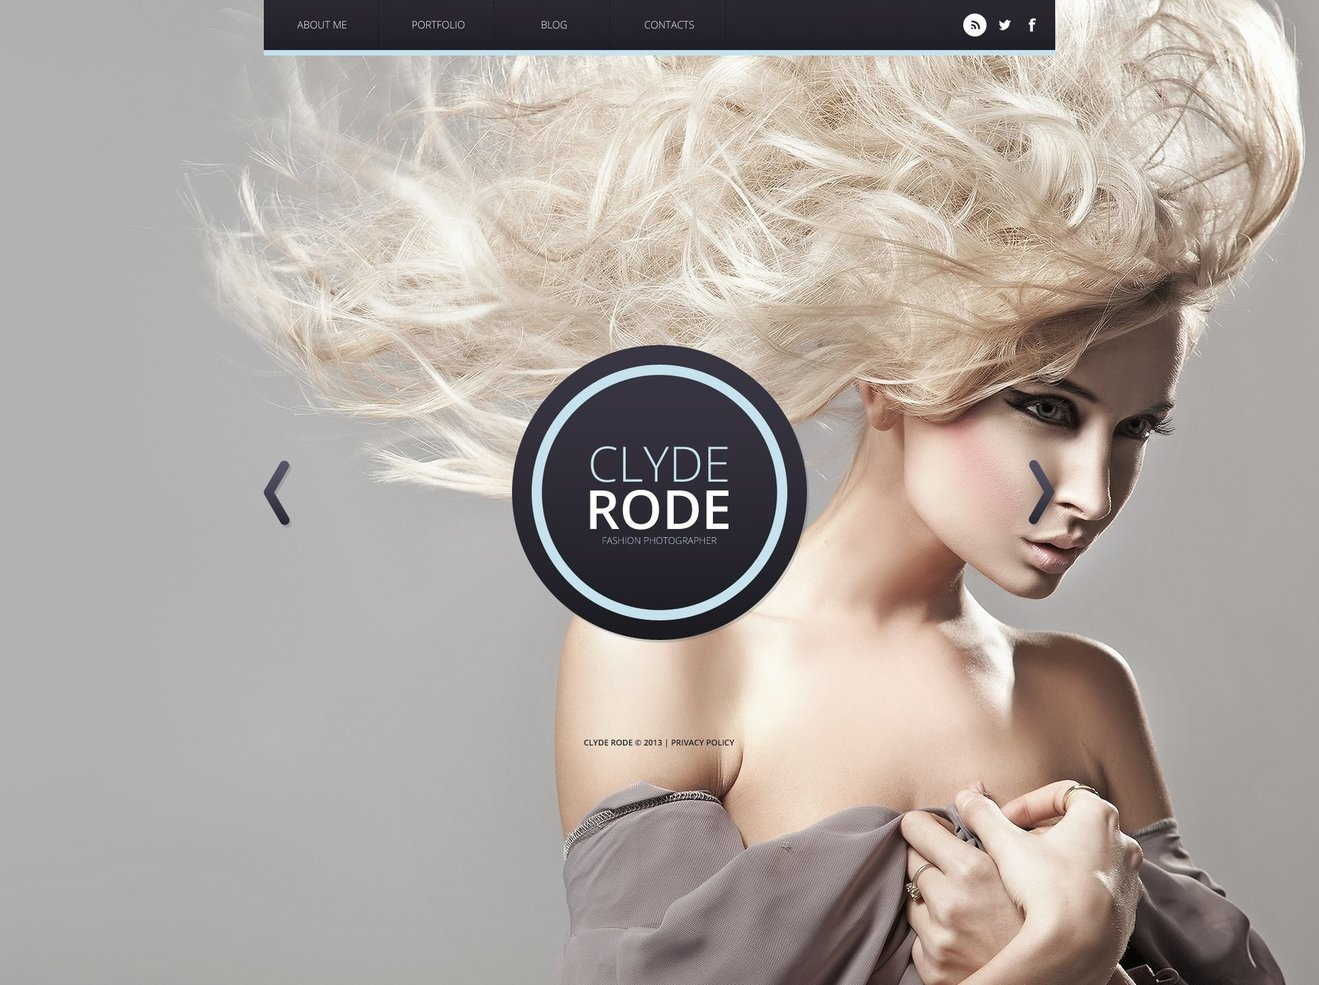 Photographer Portfolio Bootstrap Website Template